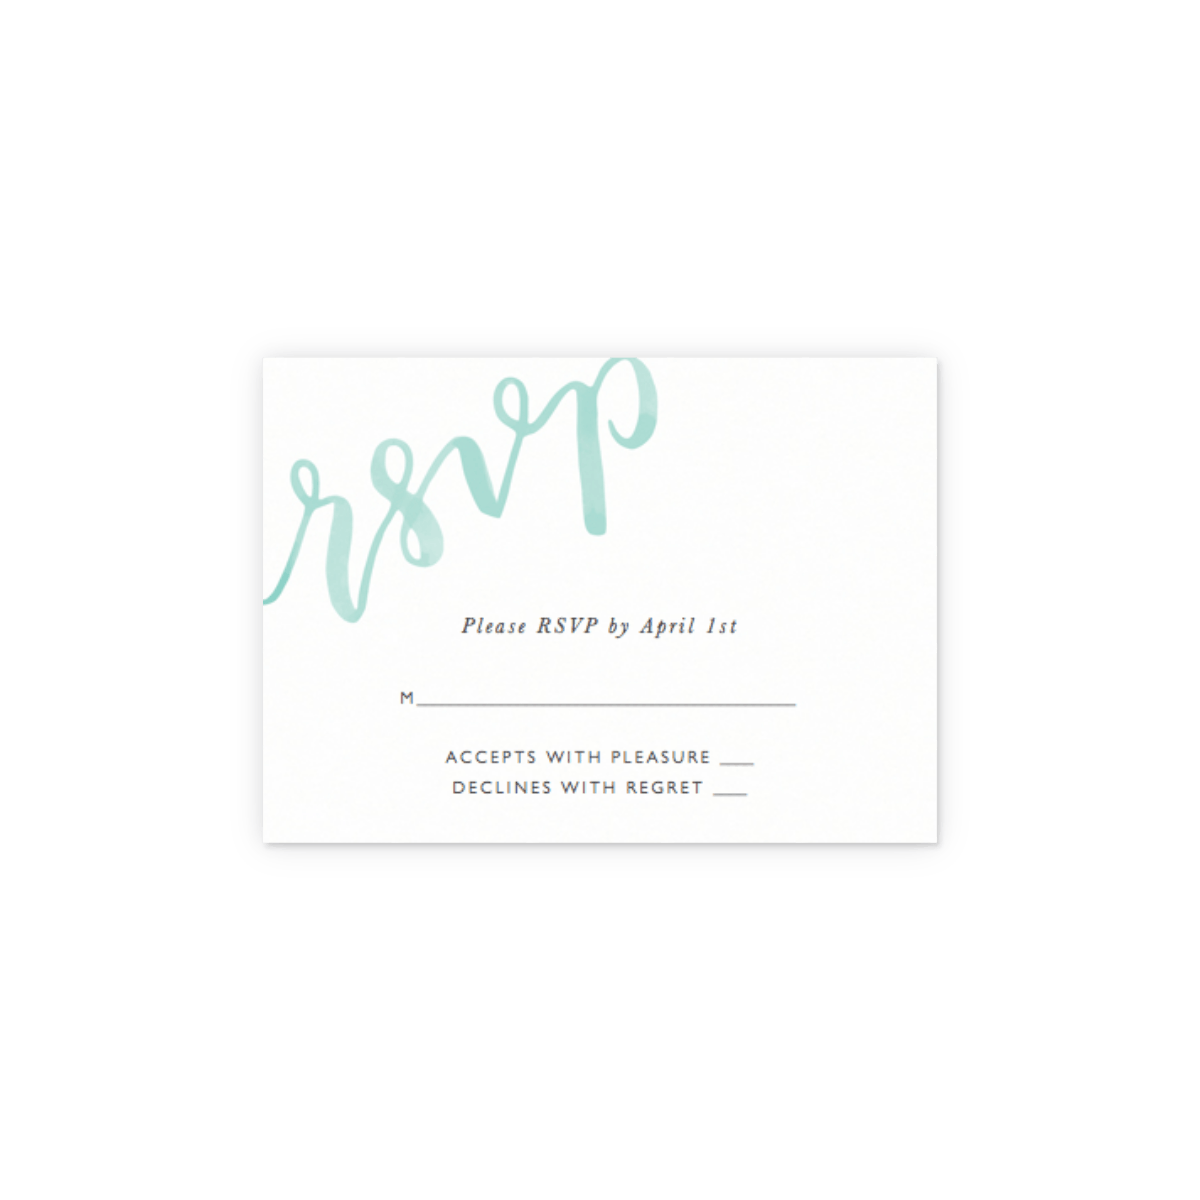 Https%3a%2f%2fwww.papier.com%2fproduct image%2f53893%2f13%2fbrush lettering turquoise 12978 rsvp 1542205740.png?ixlib=rb 1.1